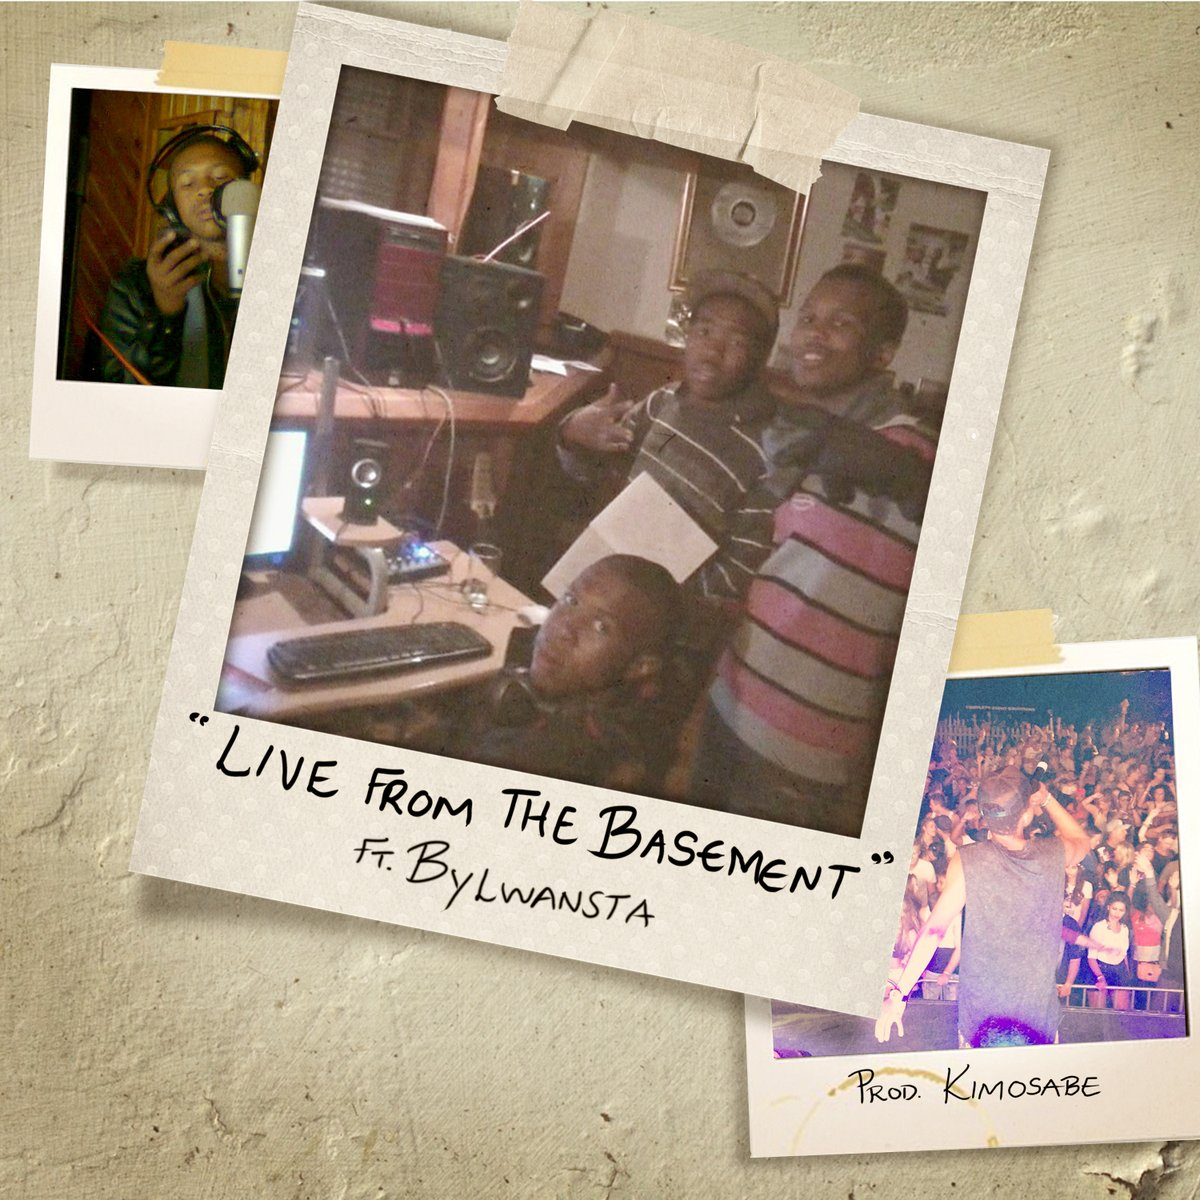 Listen To Kimosabe's New 'Live From The Basement' Song Ft. ByLwansta DWJfJeJXcAAWmeK